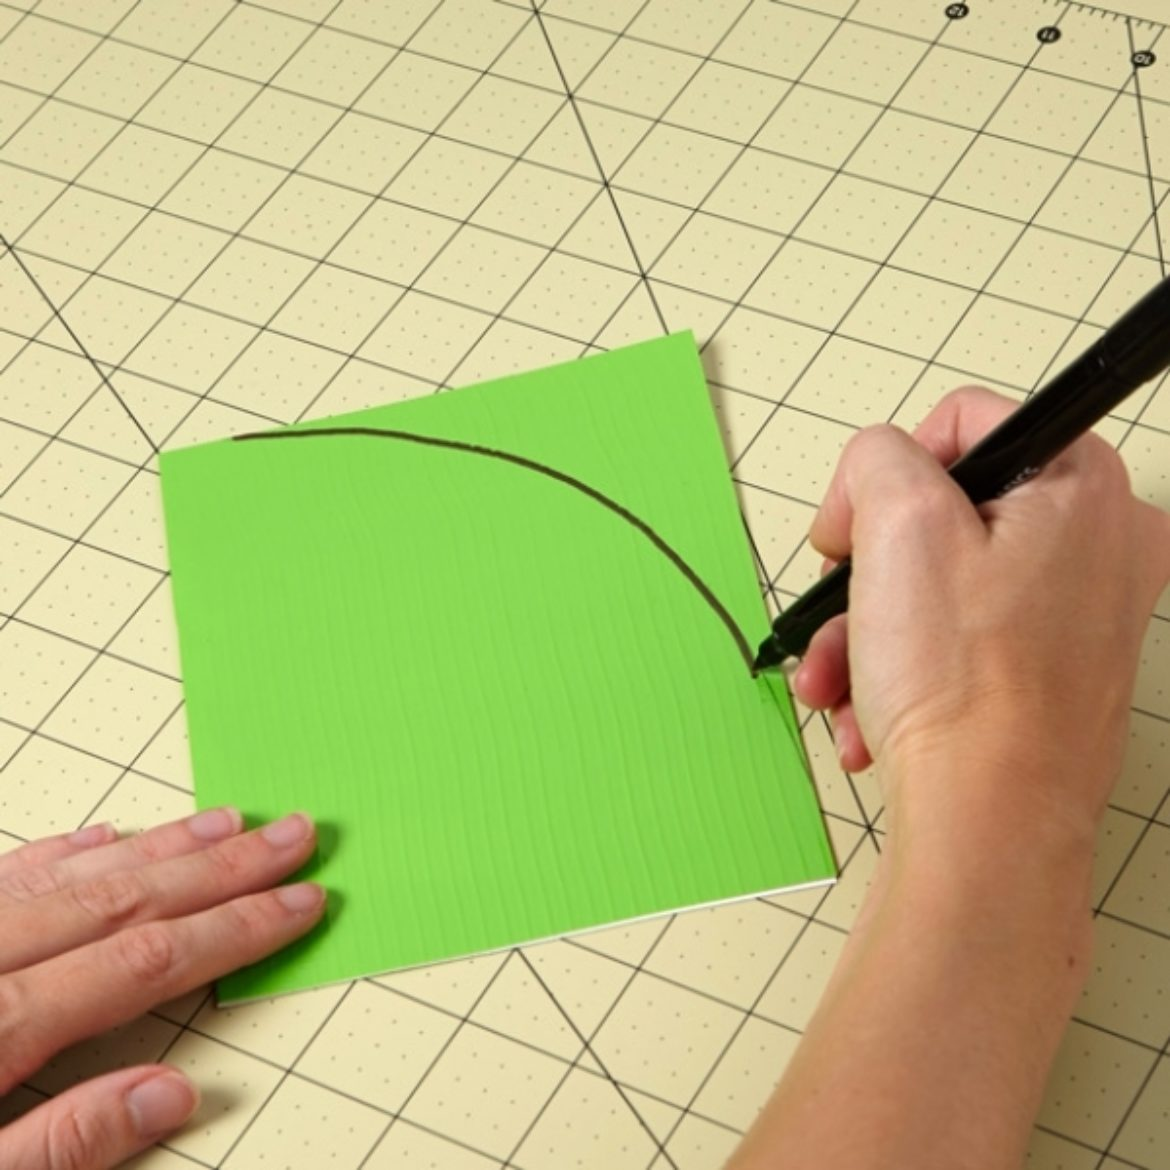 Curve being drawn on folded Duck Tape fabric